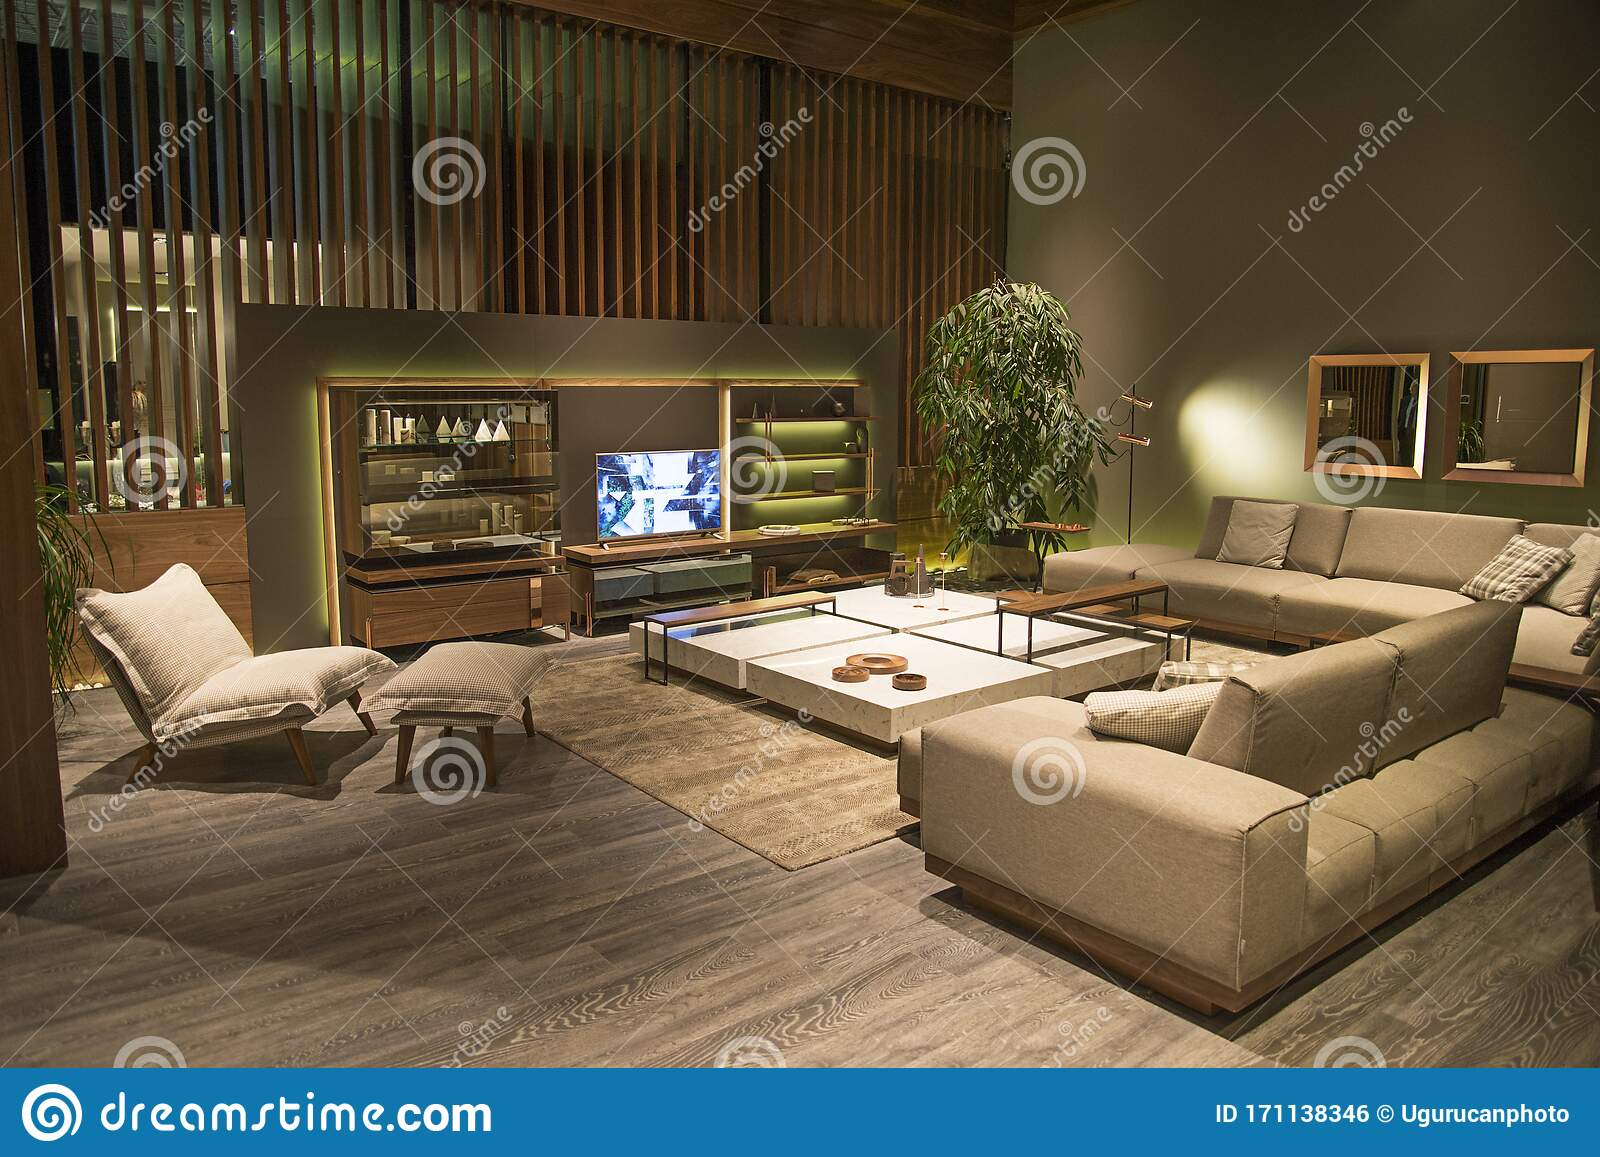 New Furniture Designs From The Furniture Fair In Istanbul Exhibition Center Leather Sofas Luxury Lounge Seating Groups Leather Editorial Photo Image Of Design Bedroom 171138346